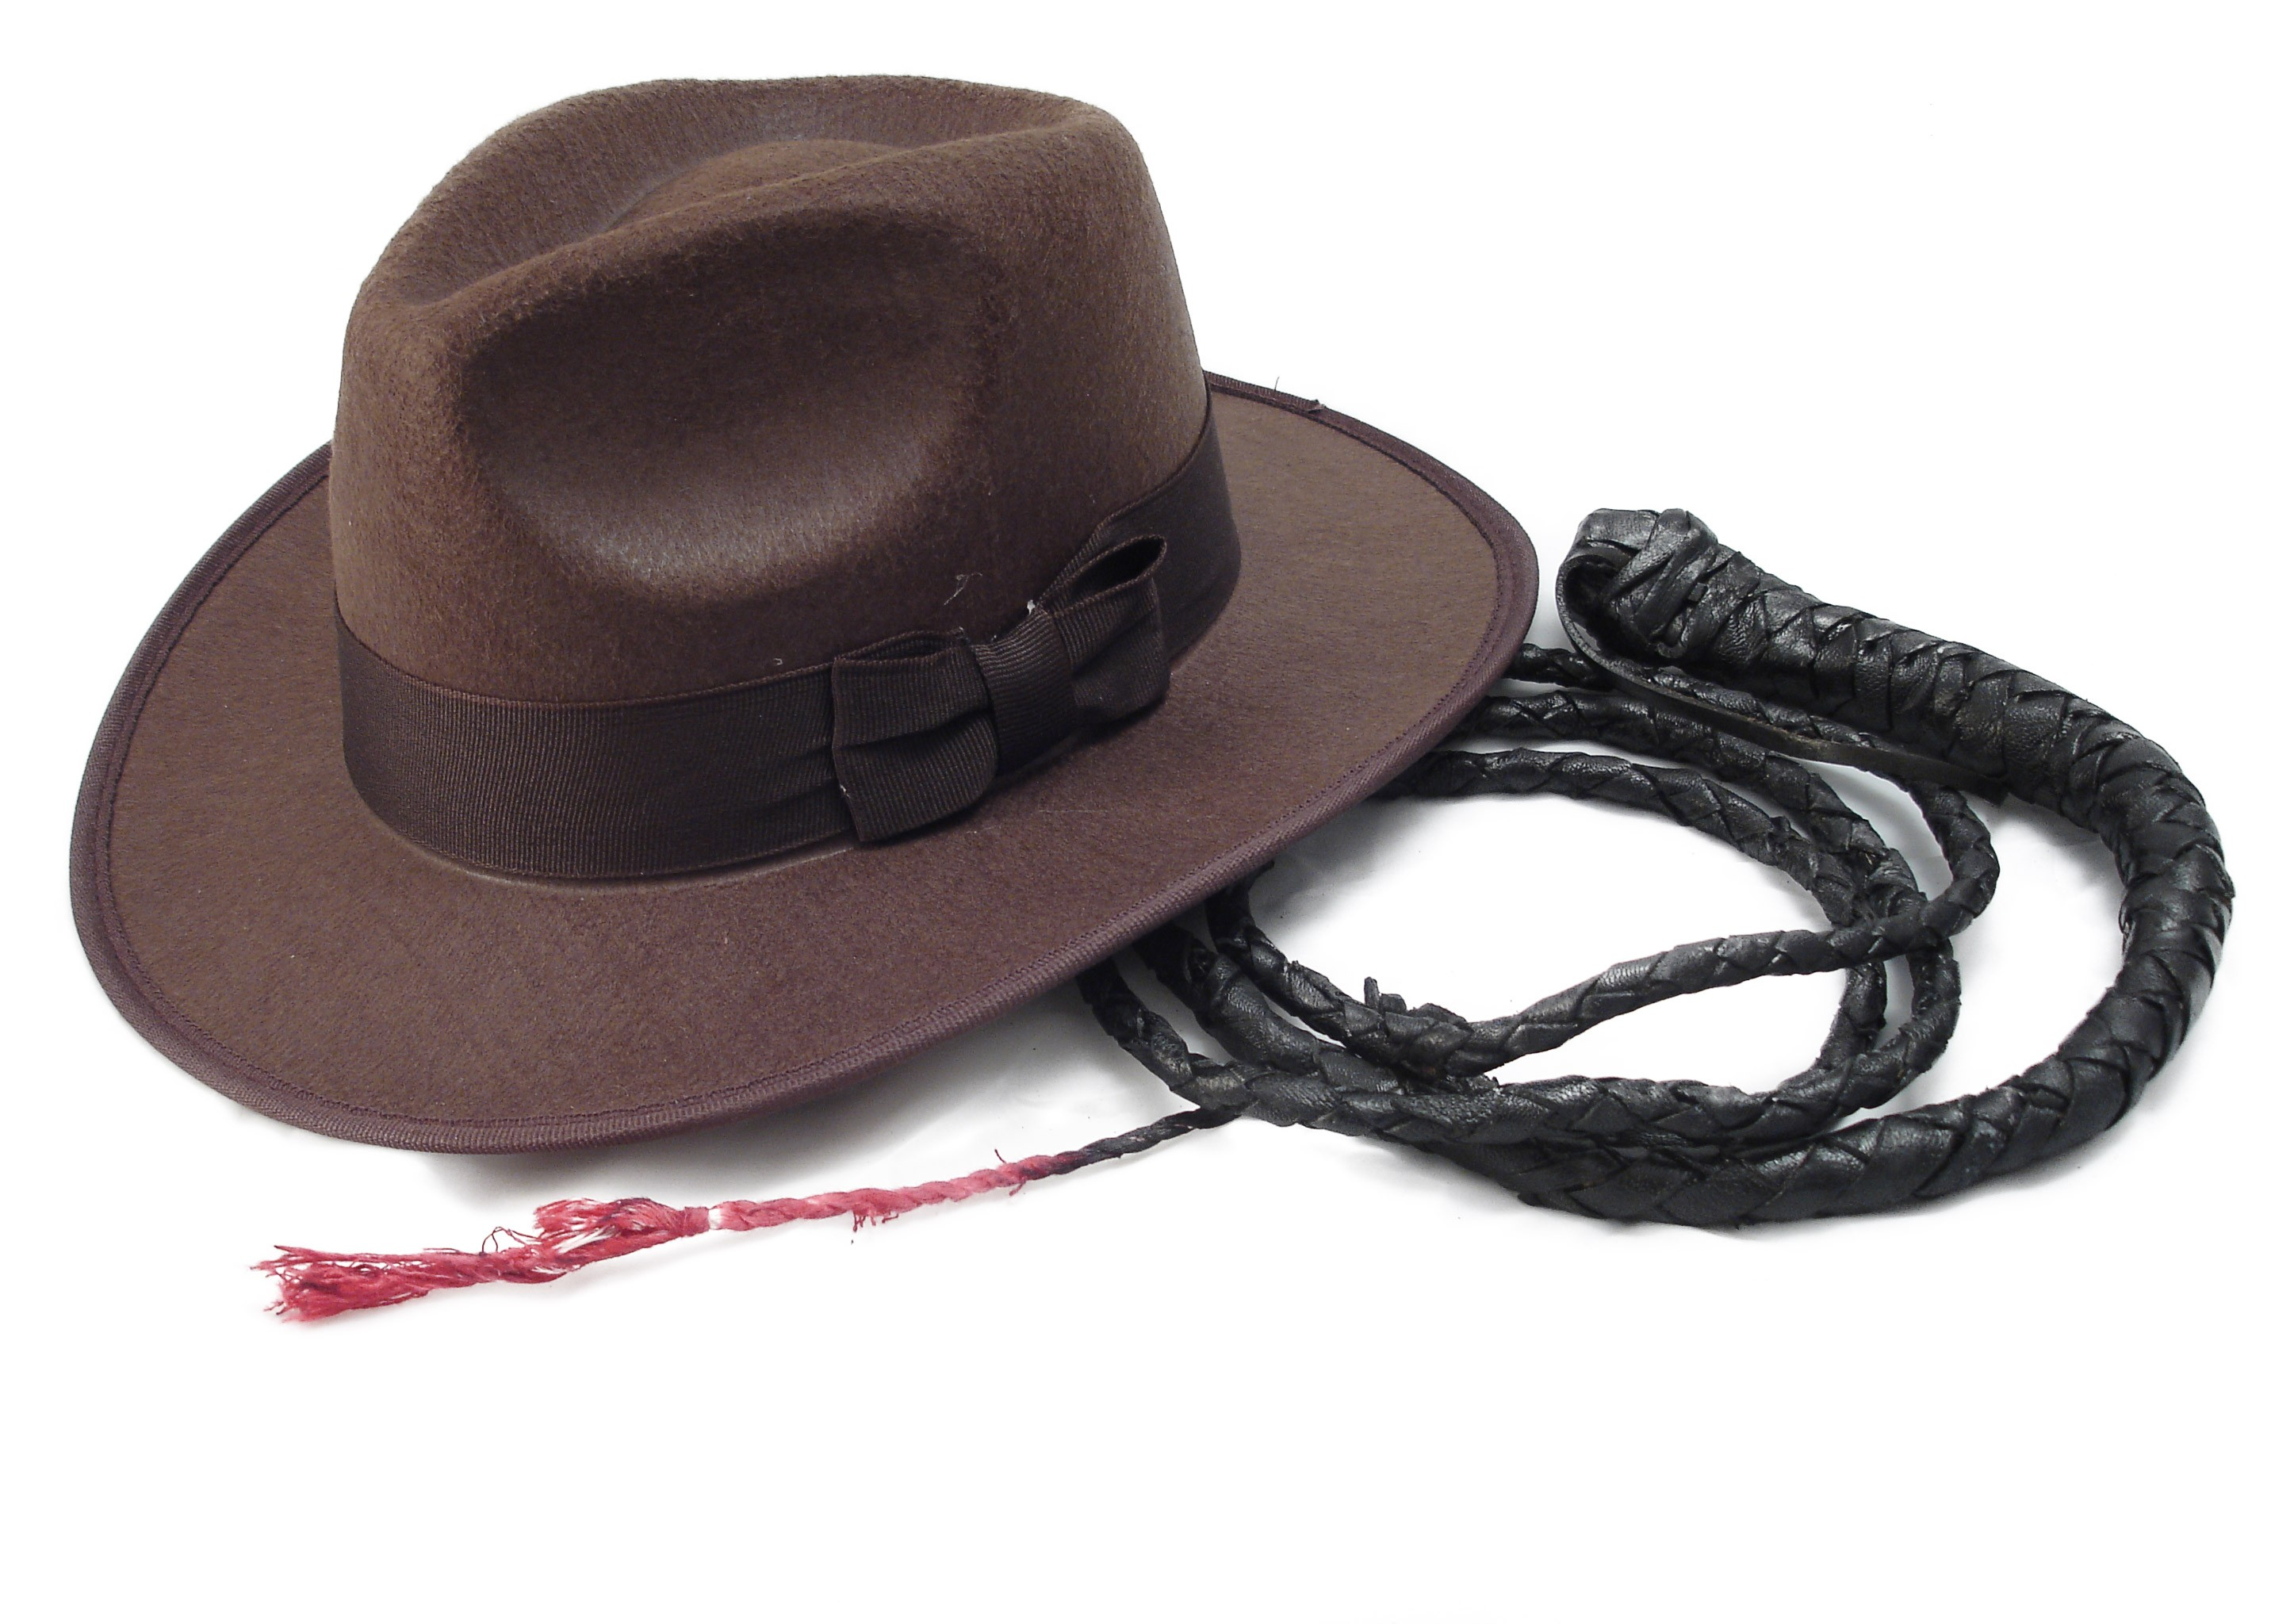 Western clipart indiana jones hat Ideas whip Indiana Jones